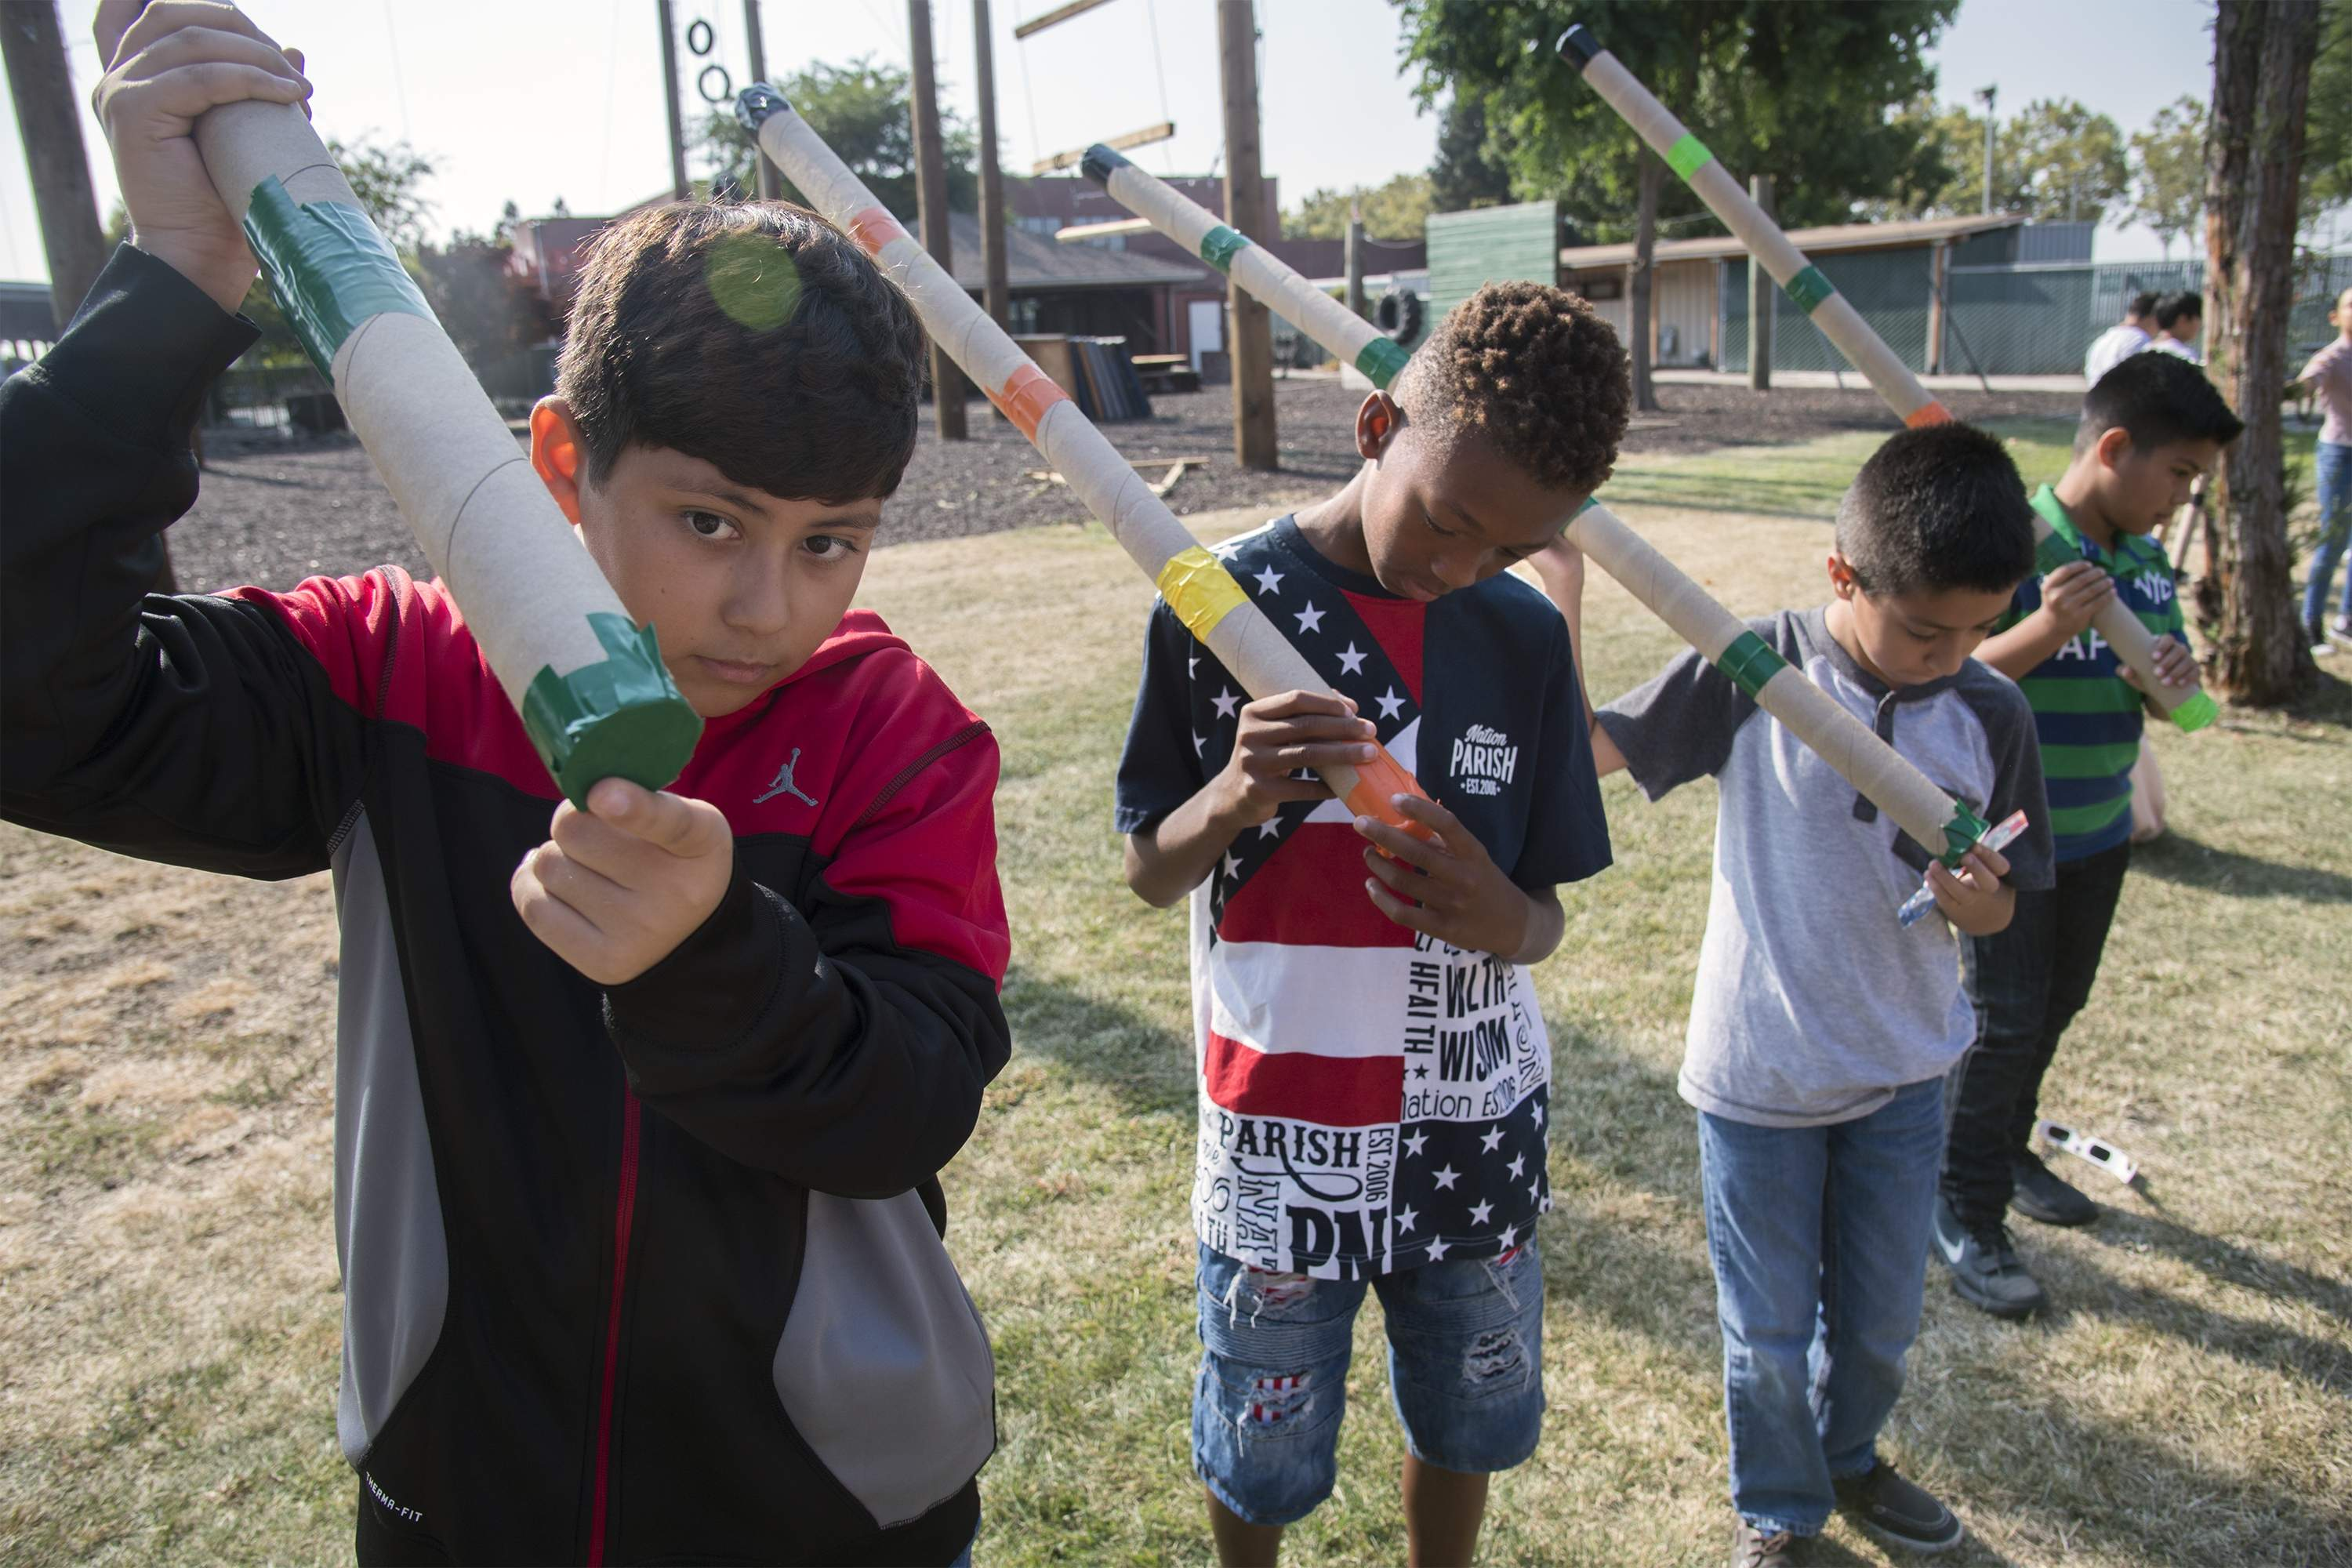 Luis Ramirez, 11, left, Kurtis Vickers, 10, Fabian Mena, 10, and Diego Caballero,10, look at the partial eclipse through homemade pinhole viewers at the San Joaquin County Office of Education in Stockton. [CLIFFORD OTO/THE RECORD]